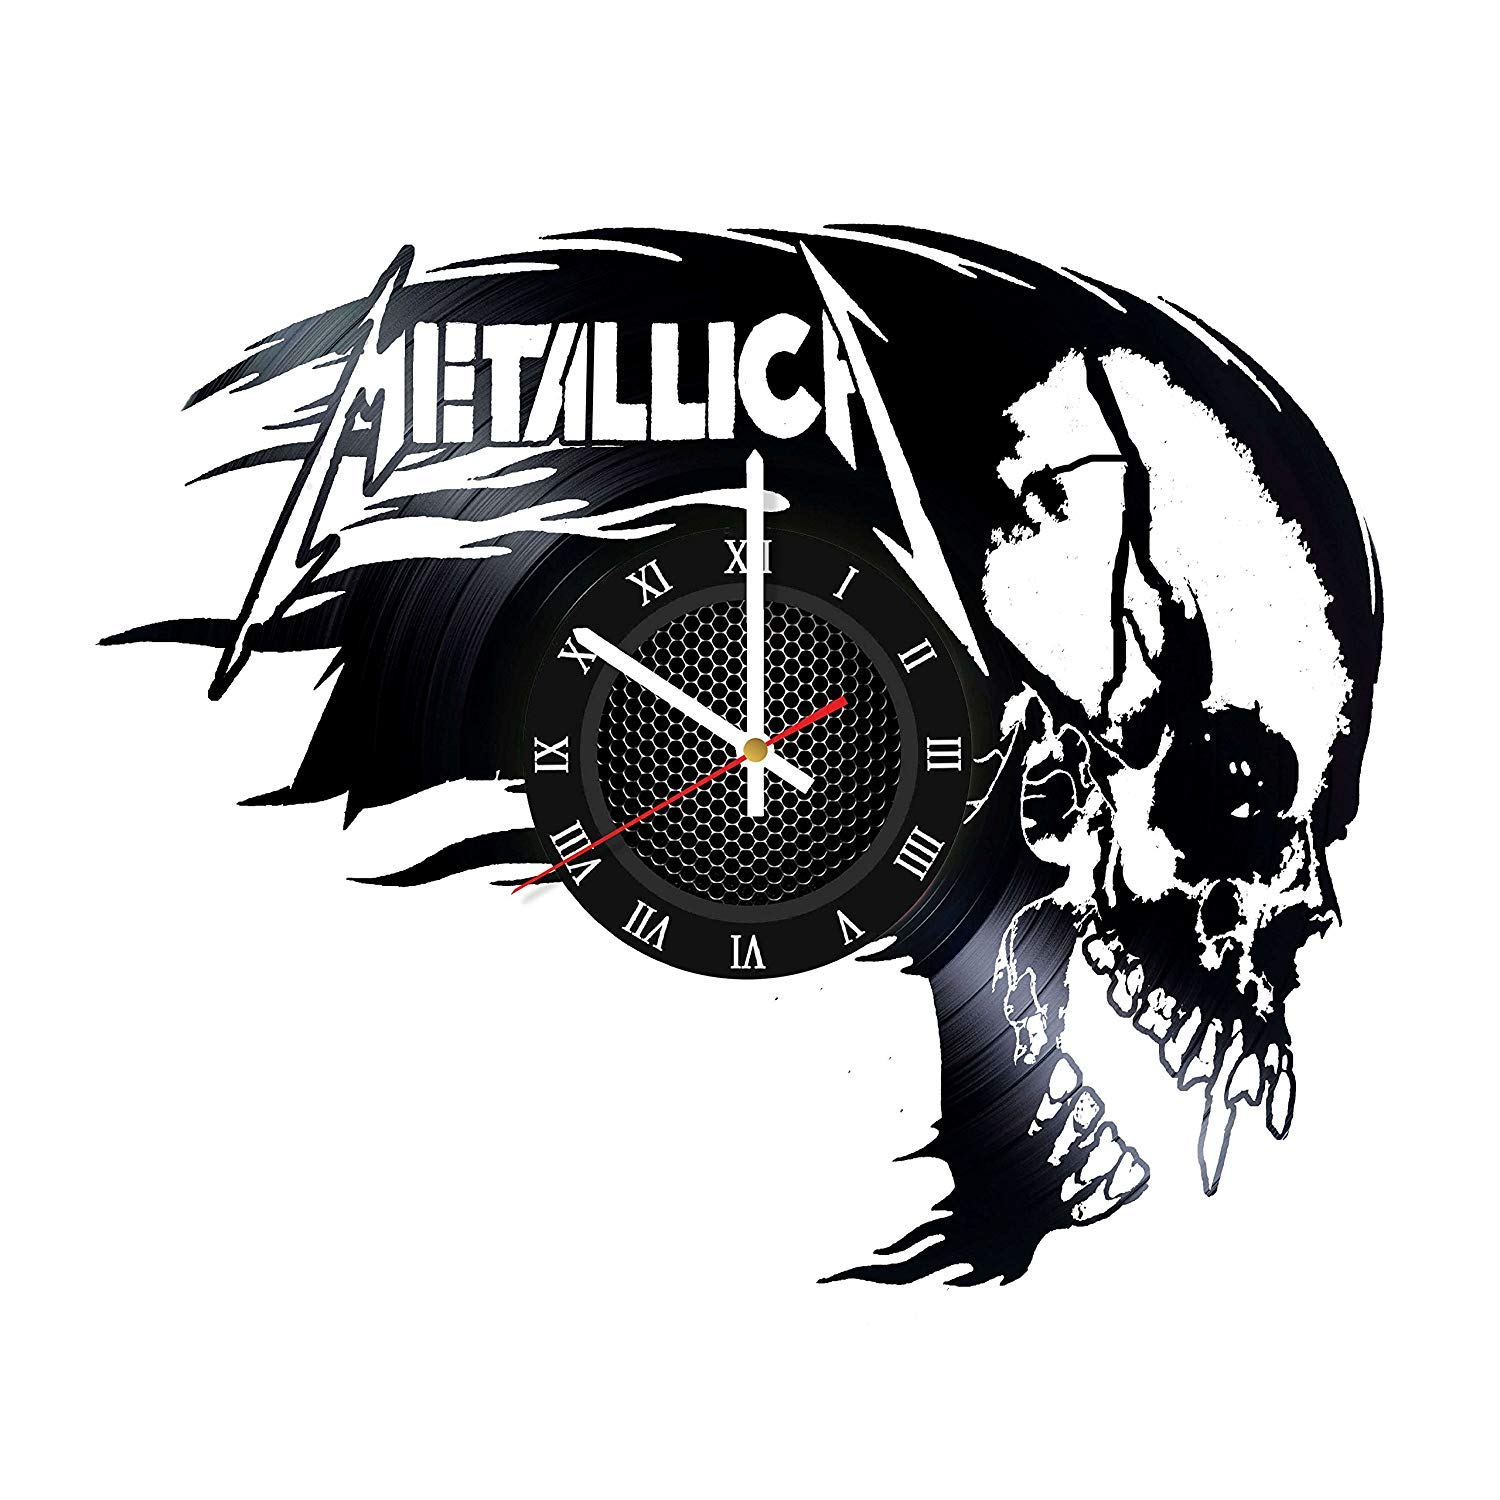 Metallica Home Decor vinyl Music Clock Singer Band Legend Gift Idea for Him Fan club Home Decor Idea Wall Clock Design Special Offer Special Occasion Wall Clock Music Bands and Musicians Themed